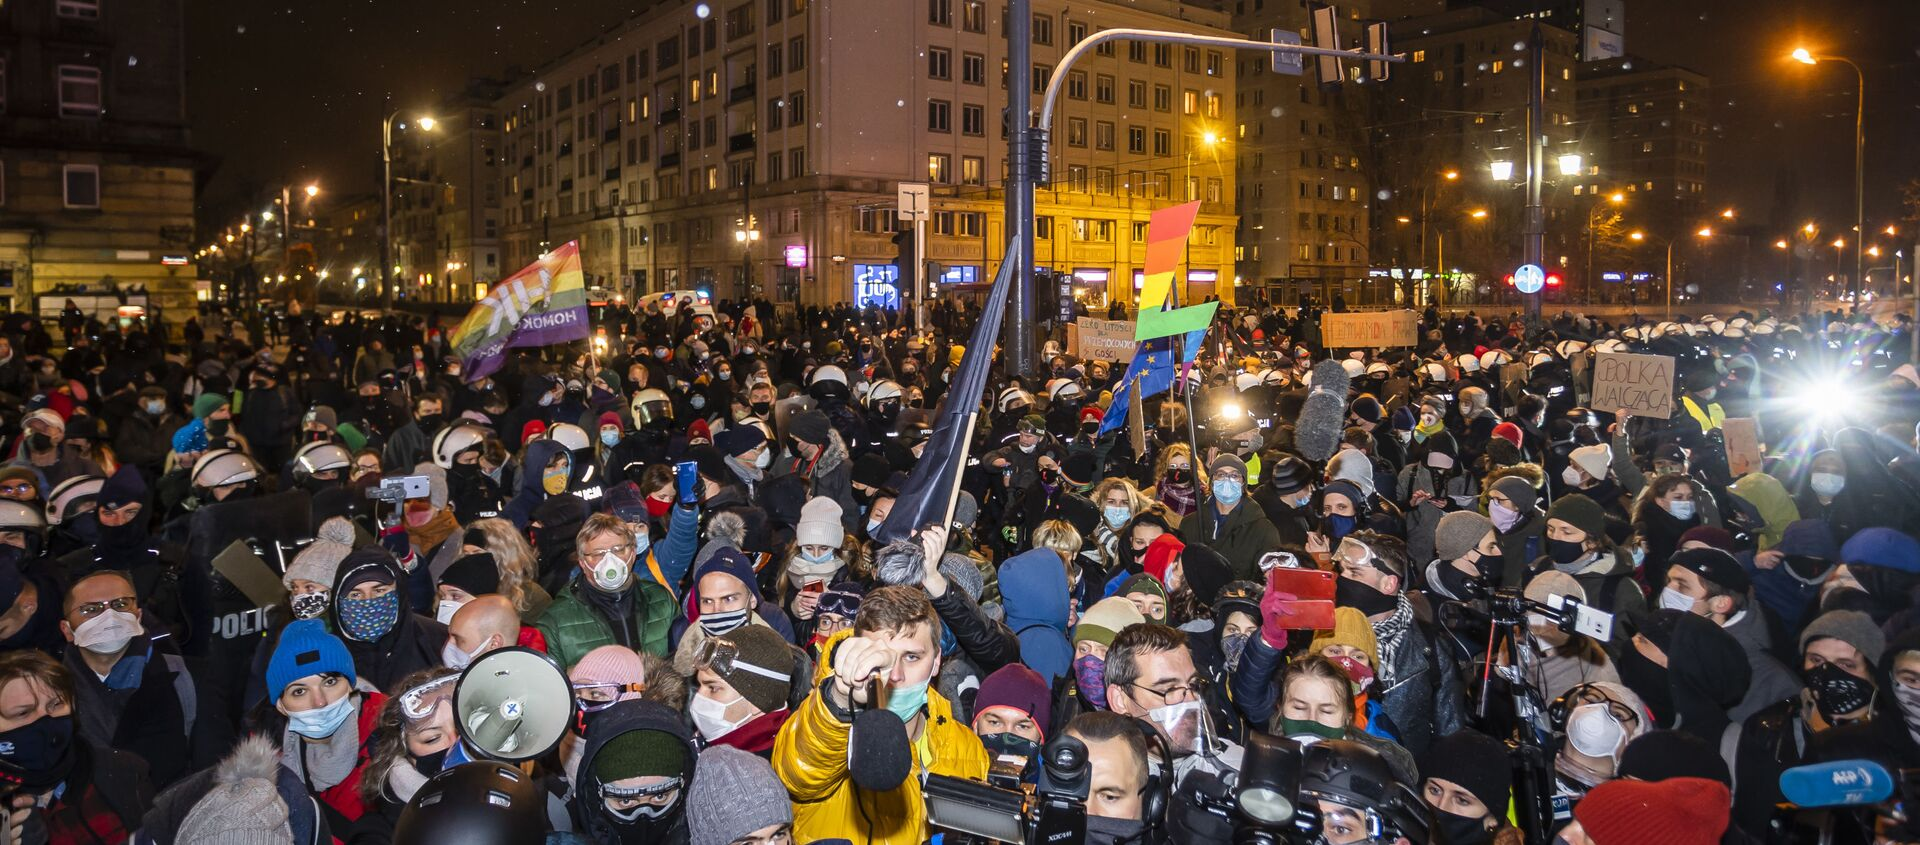 Demonstrators take part in a pro-choice protest in the center of Warsaw, on November 28, 2020, as part of a nationwide wave of protests since October 22 against Poland's near-total ban on abortion.  - Sputnik Italia, 1920, 13.12.2020